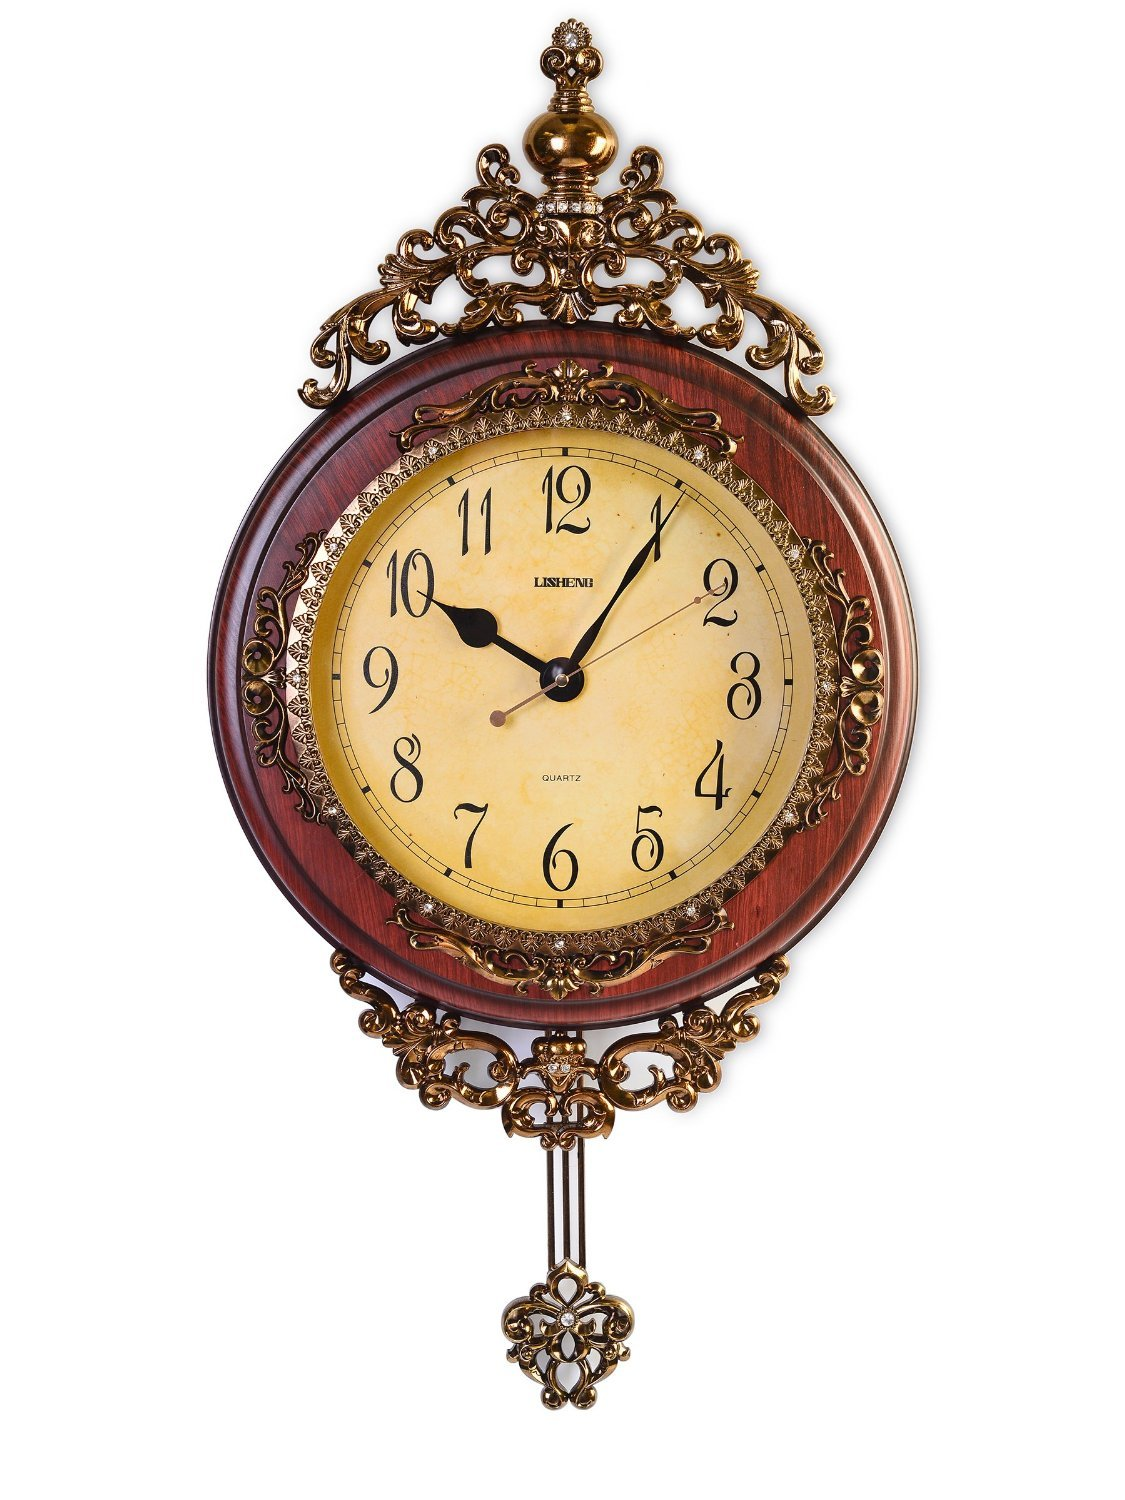 Grandfather wall clock vintage decor wood pendulum antique brown bedroom living ebay - Antique clock designs for your home ...